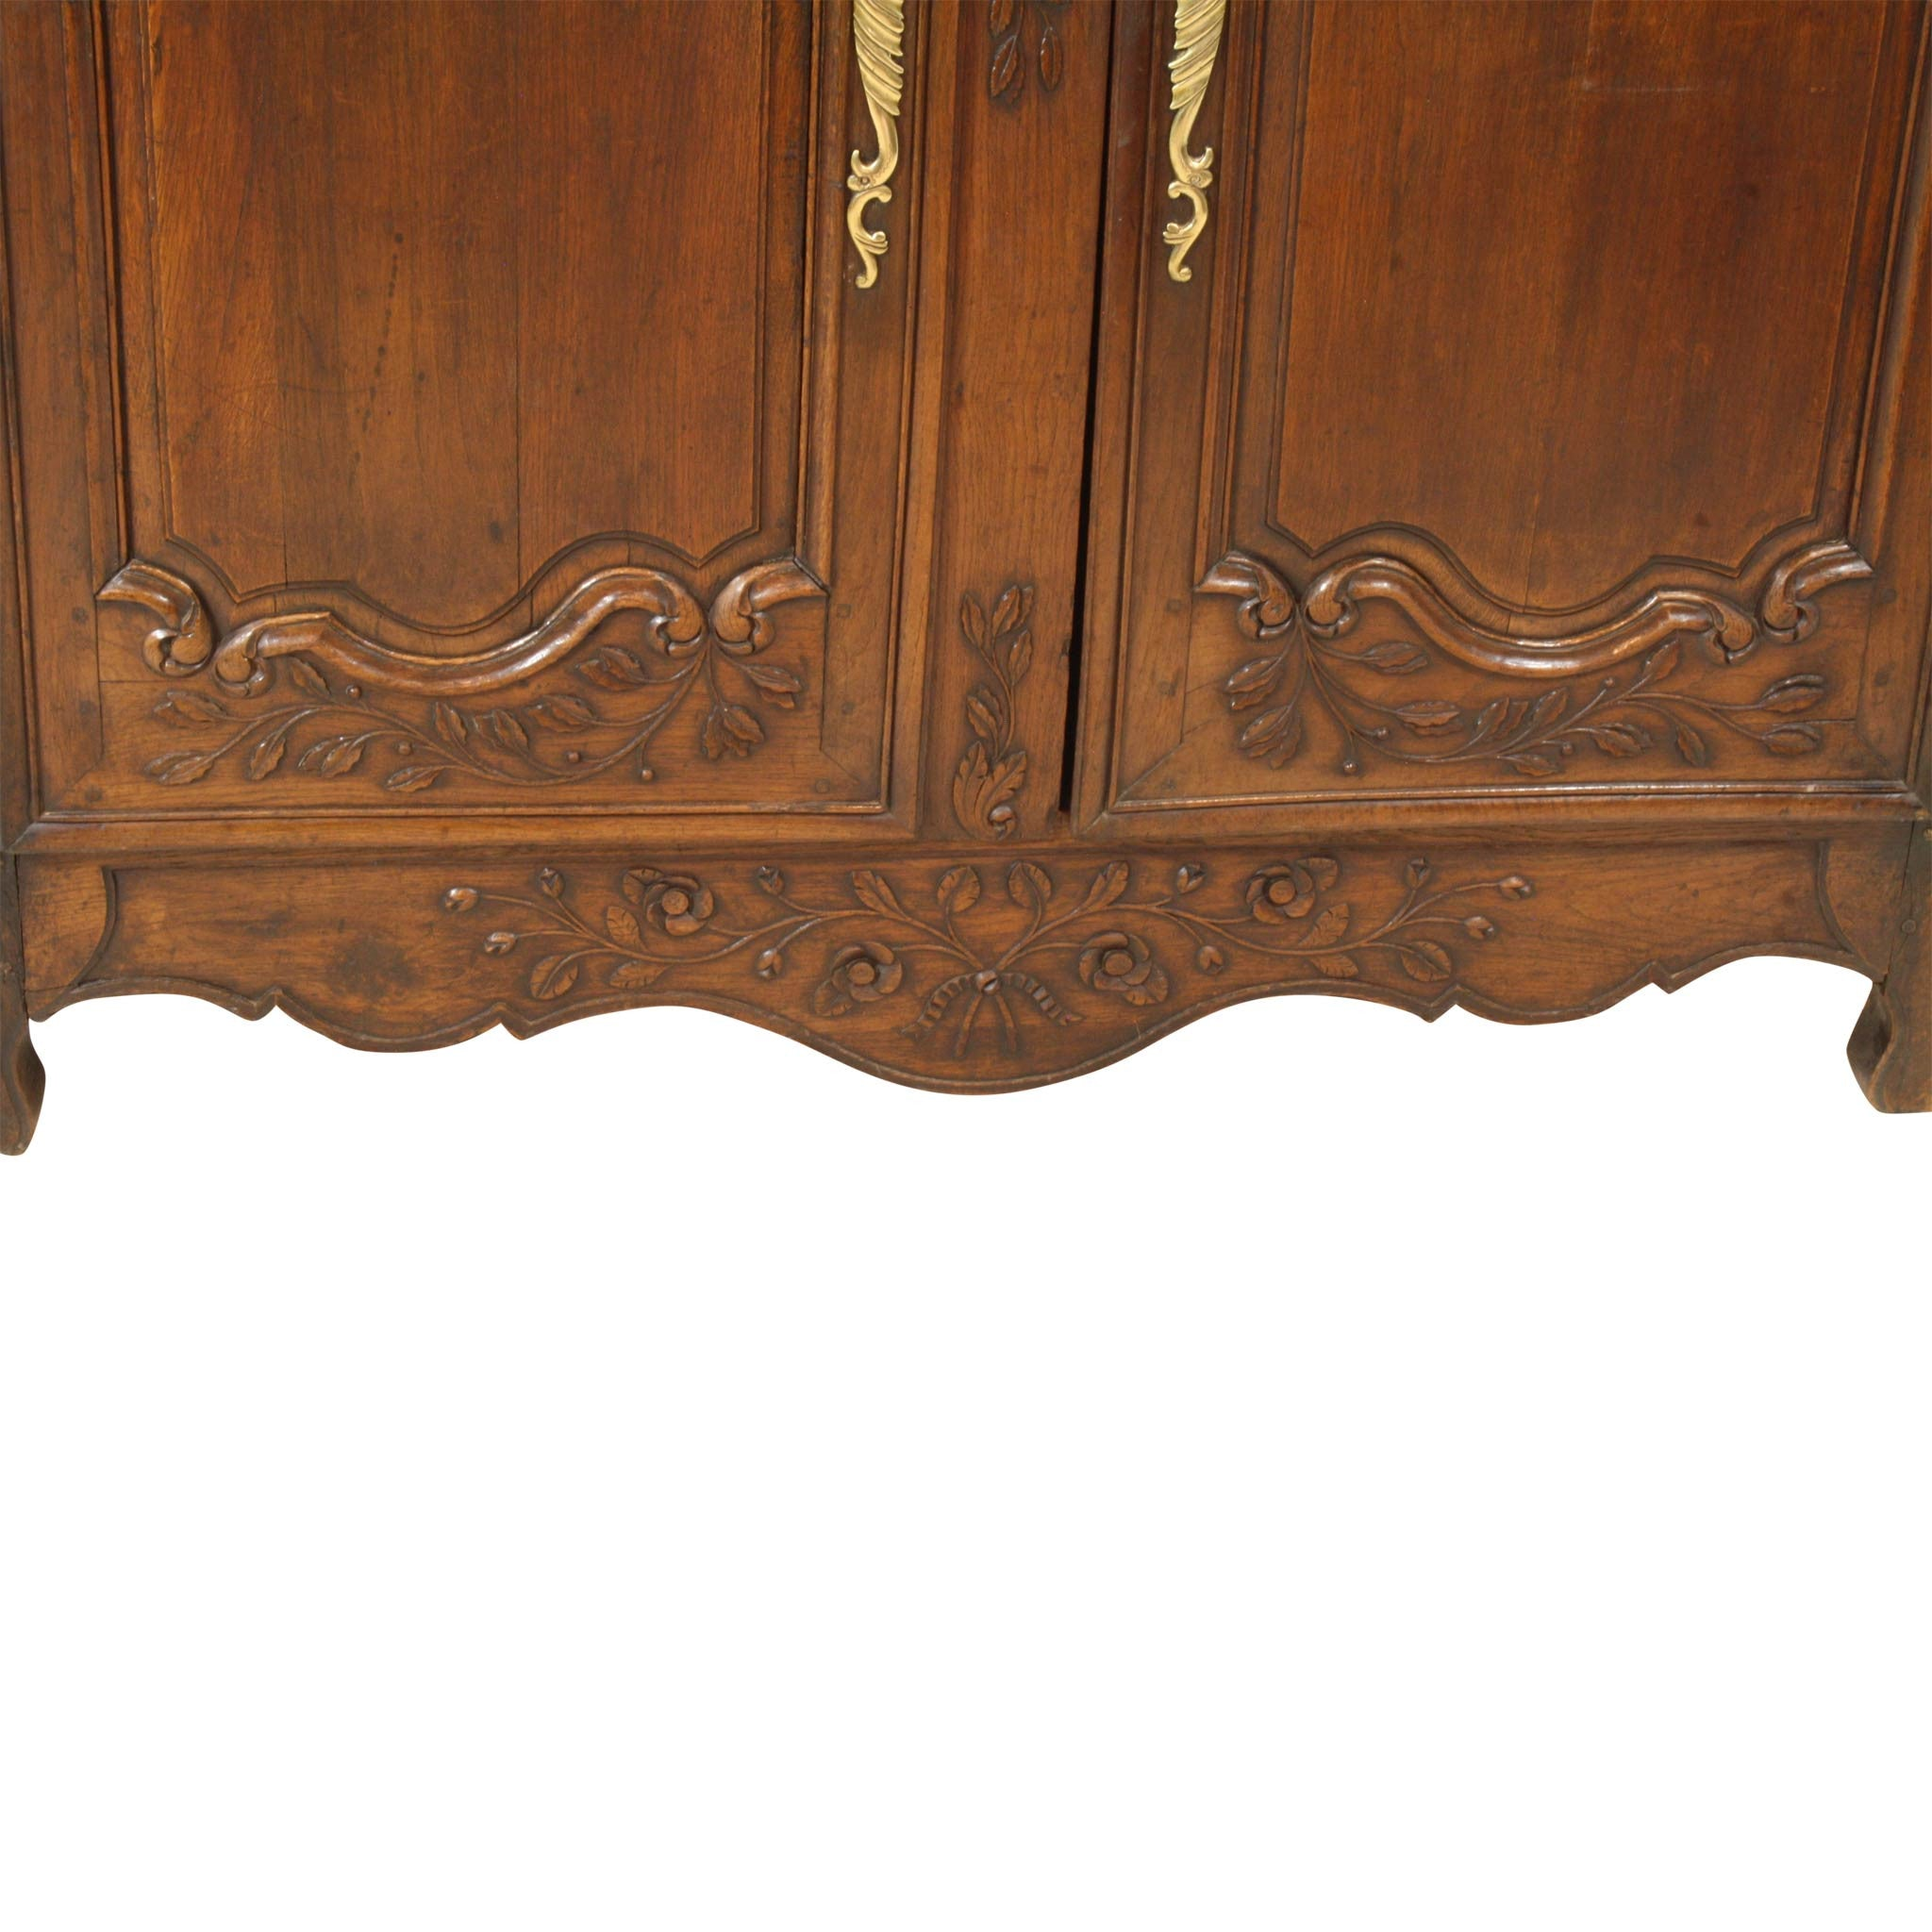 18th Century French Armoire (1stdibs)